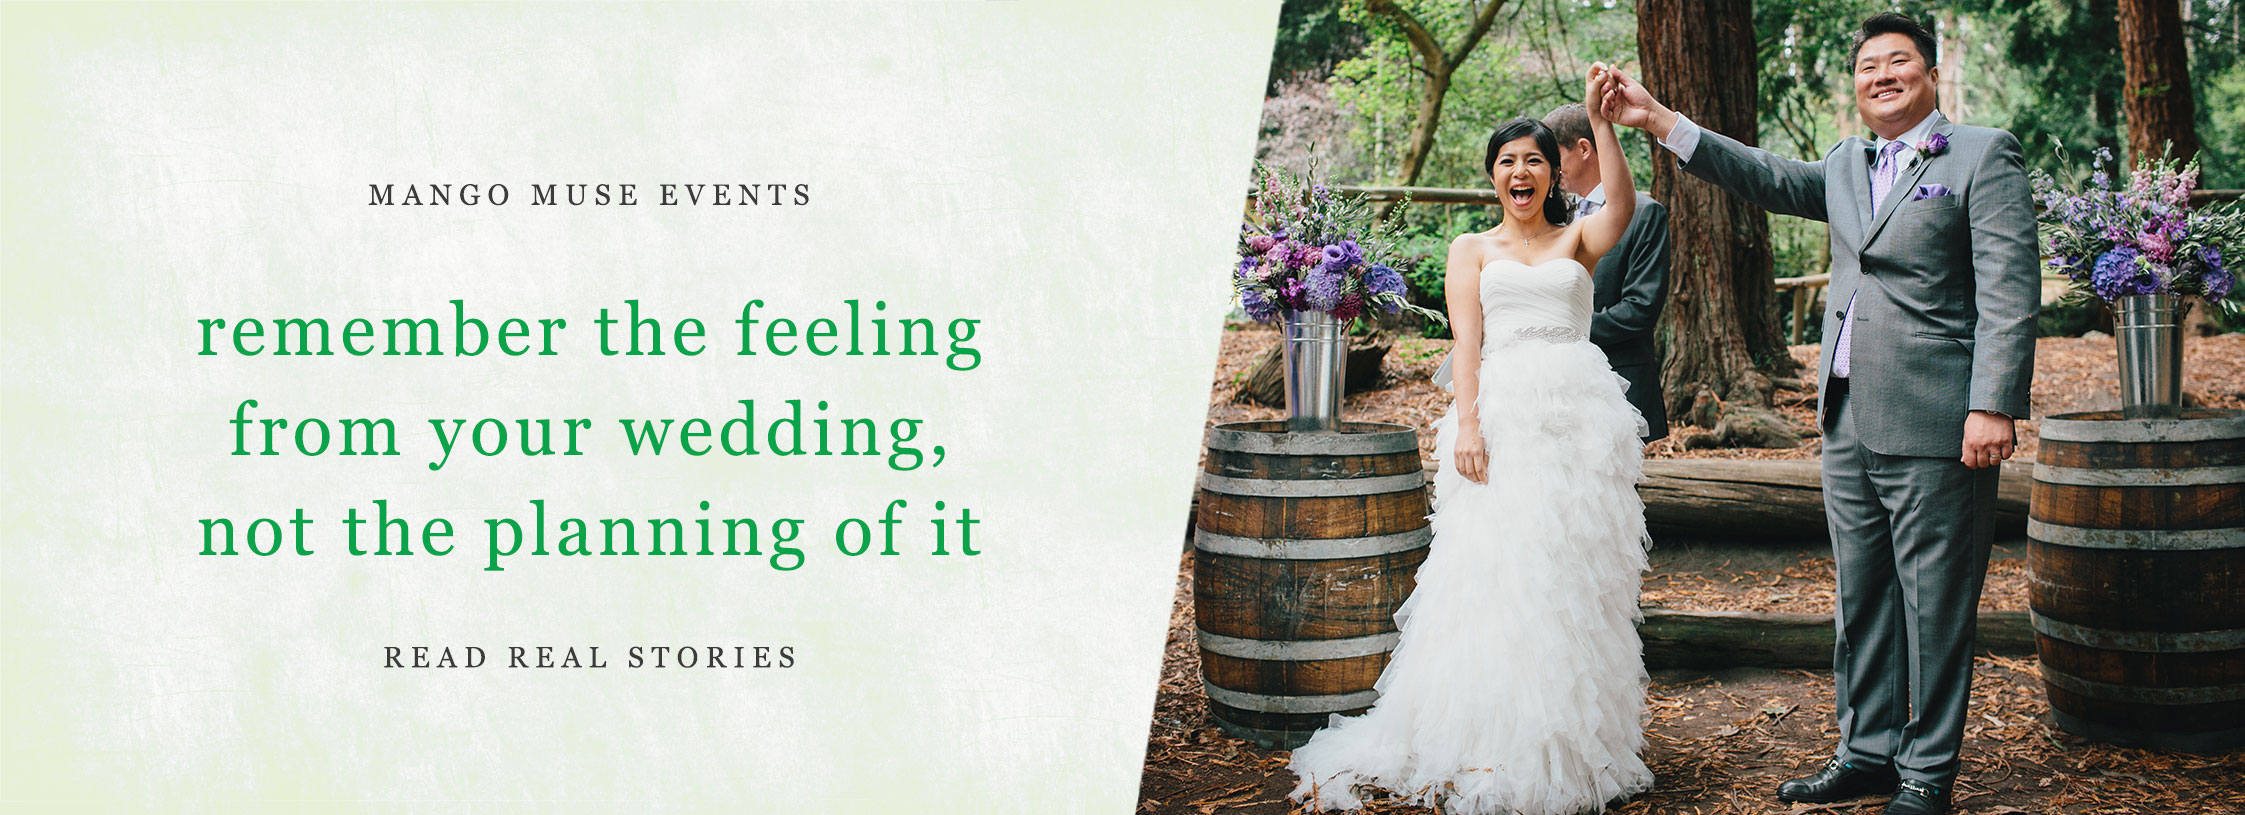 Bride and groom just married at a San Francisco destination wedding at Stern Grove by Destination wedding planner Mango Muse Events